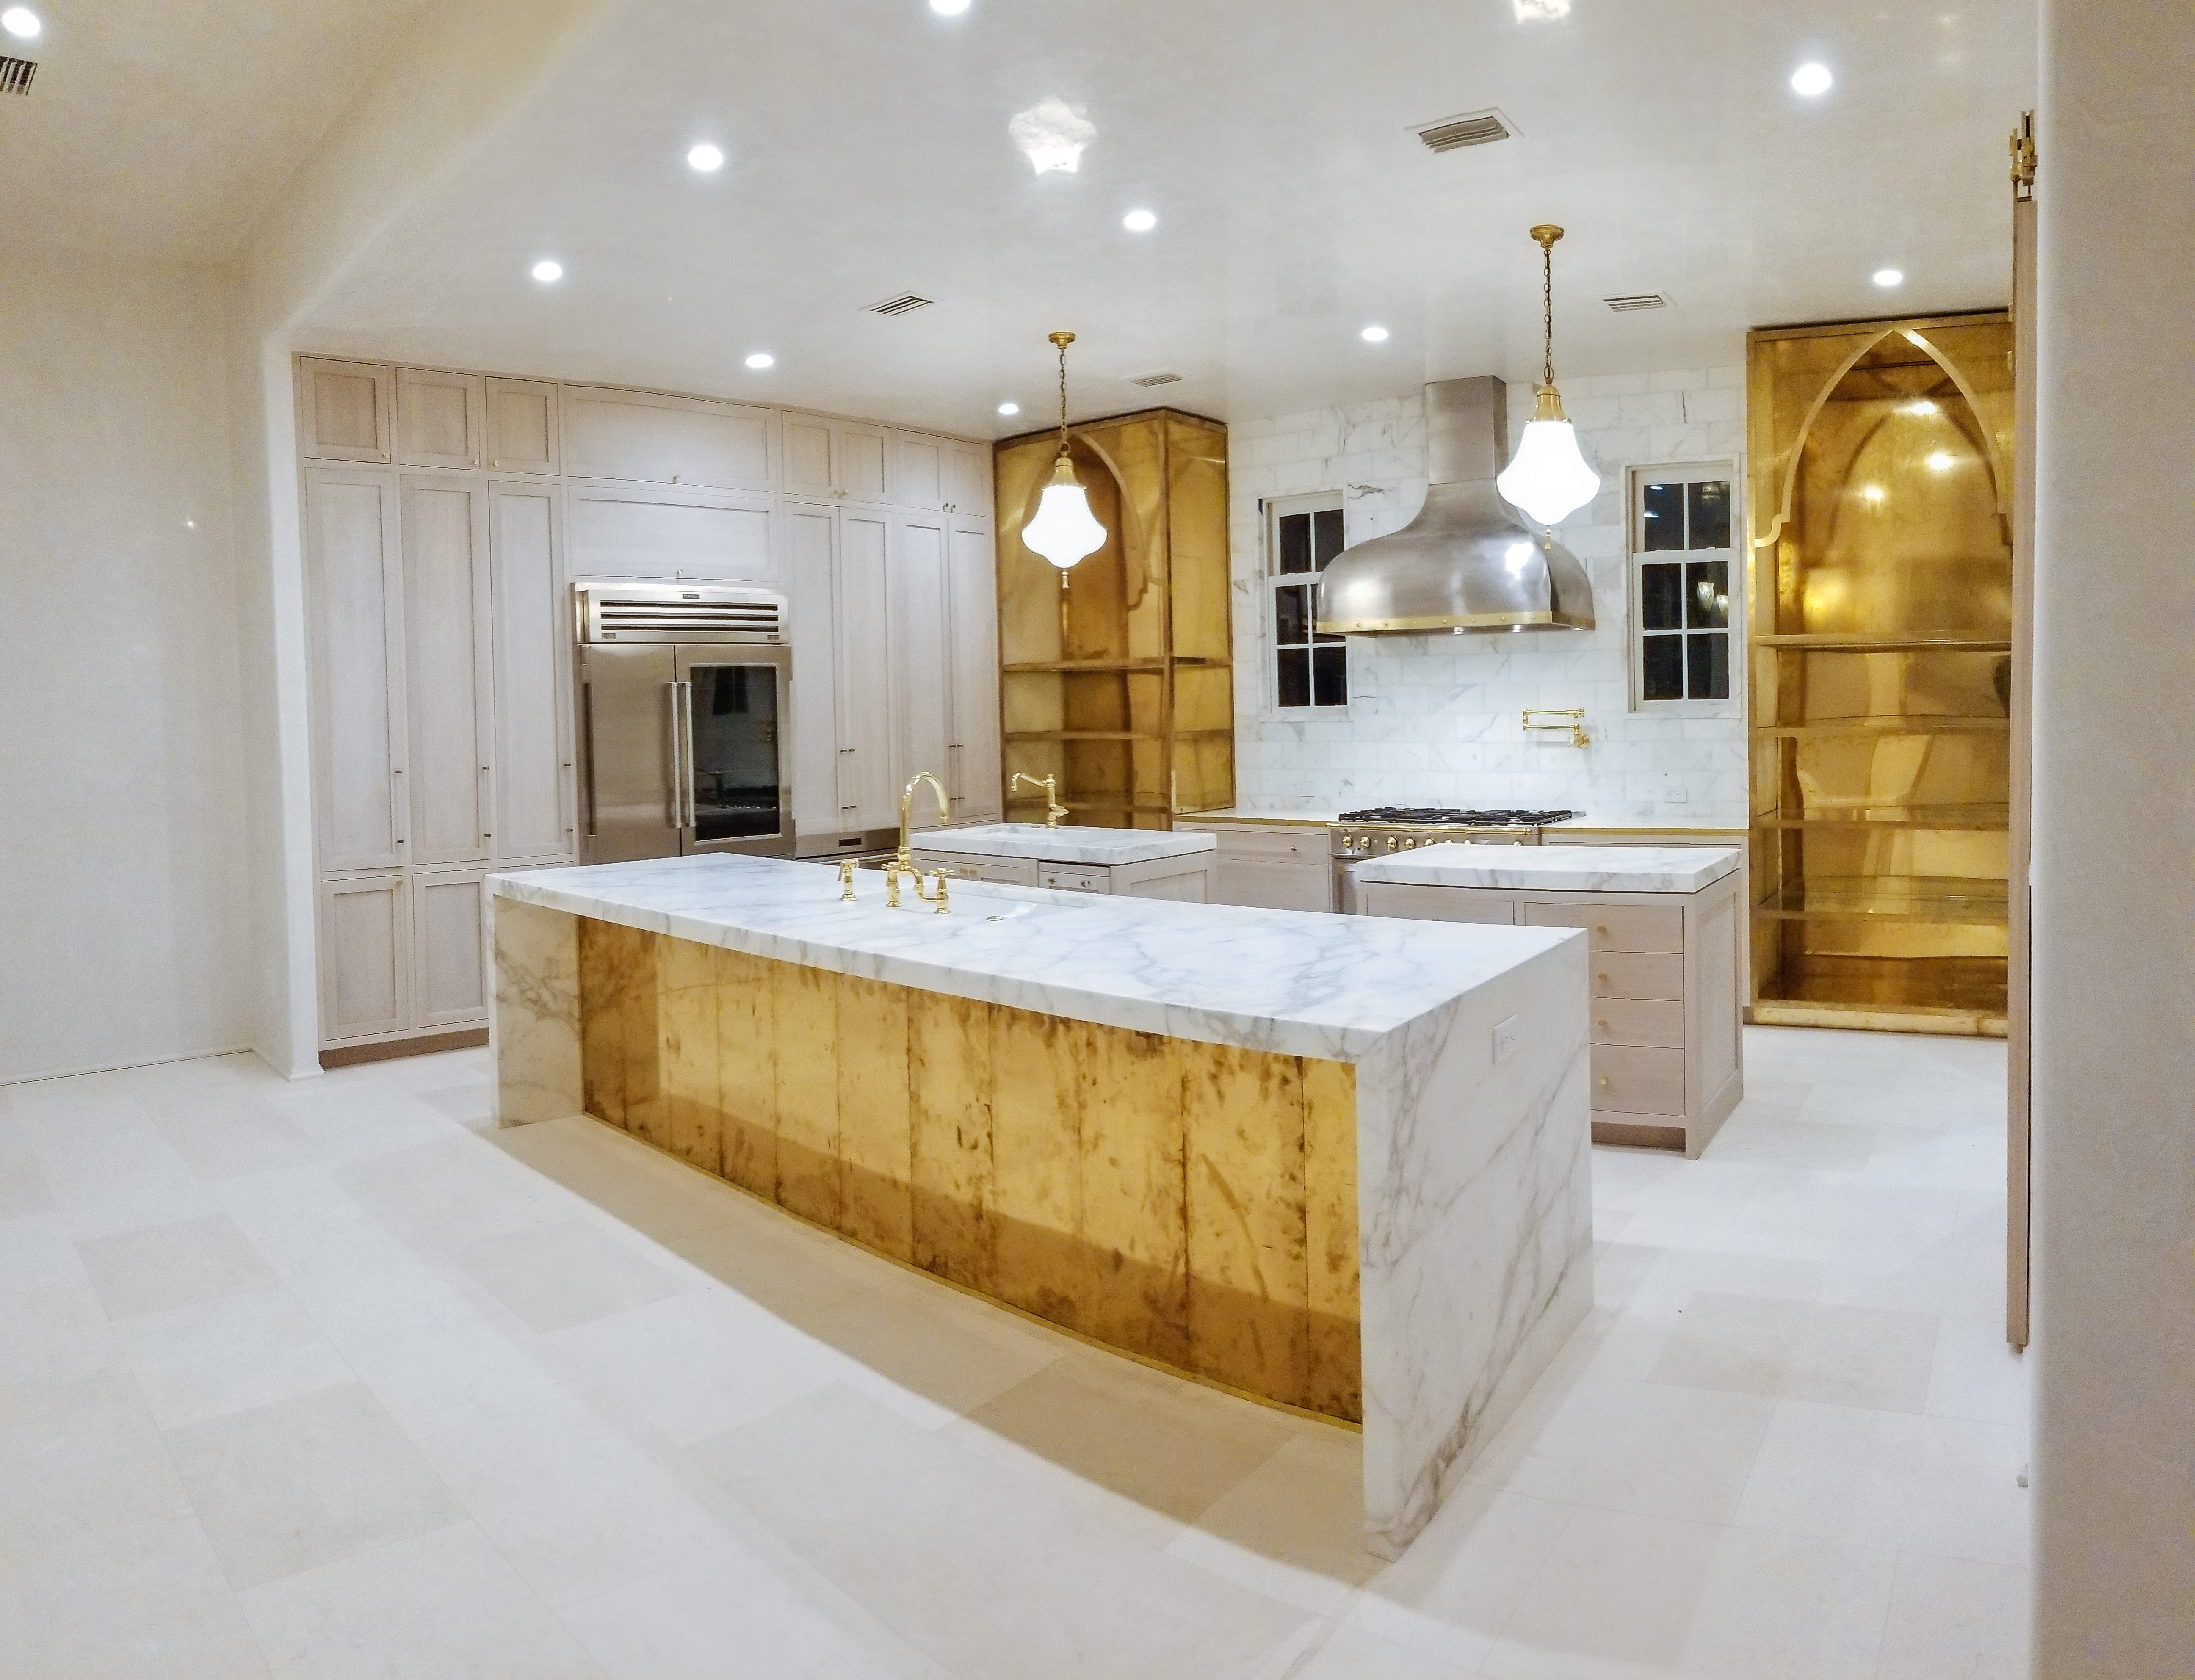 Oak and Brass Kitchen front side view